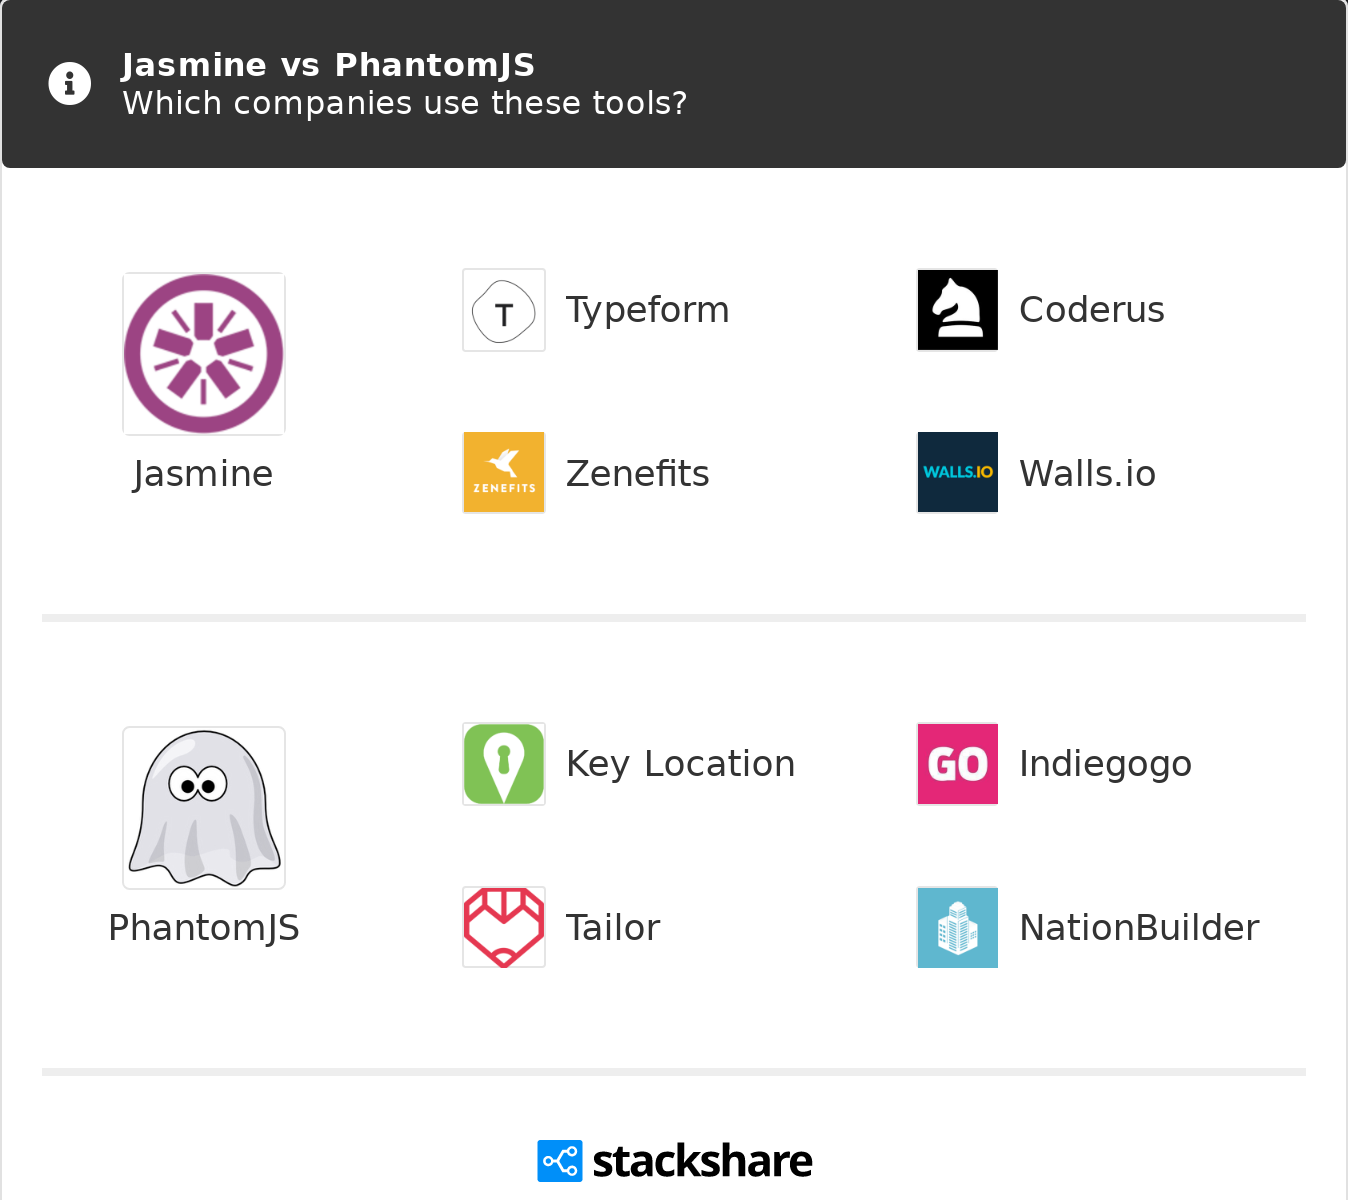 Jasmine vs PhantomJS | What are the differences?